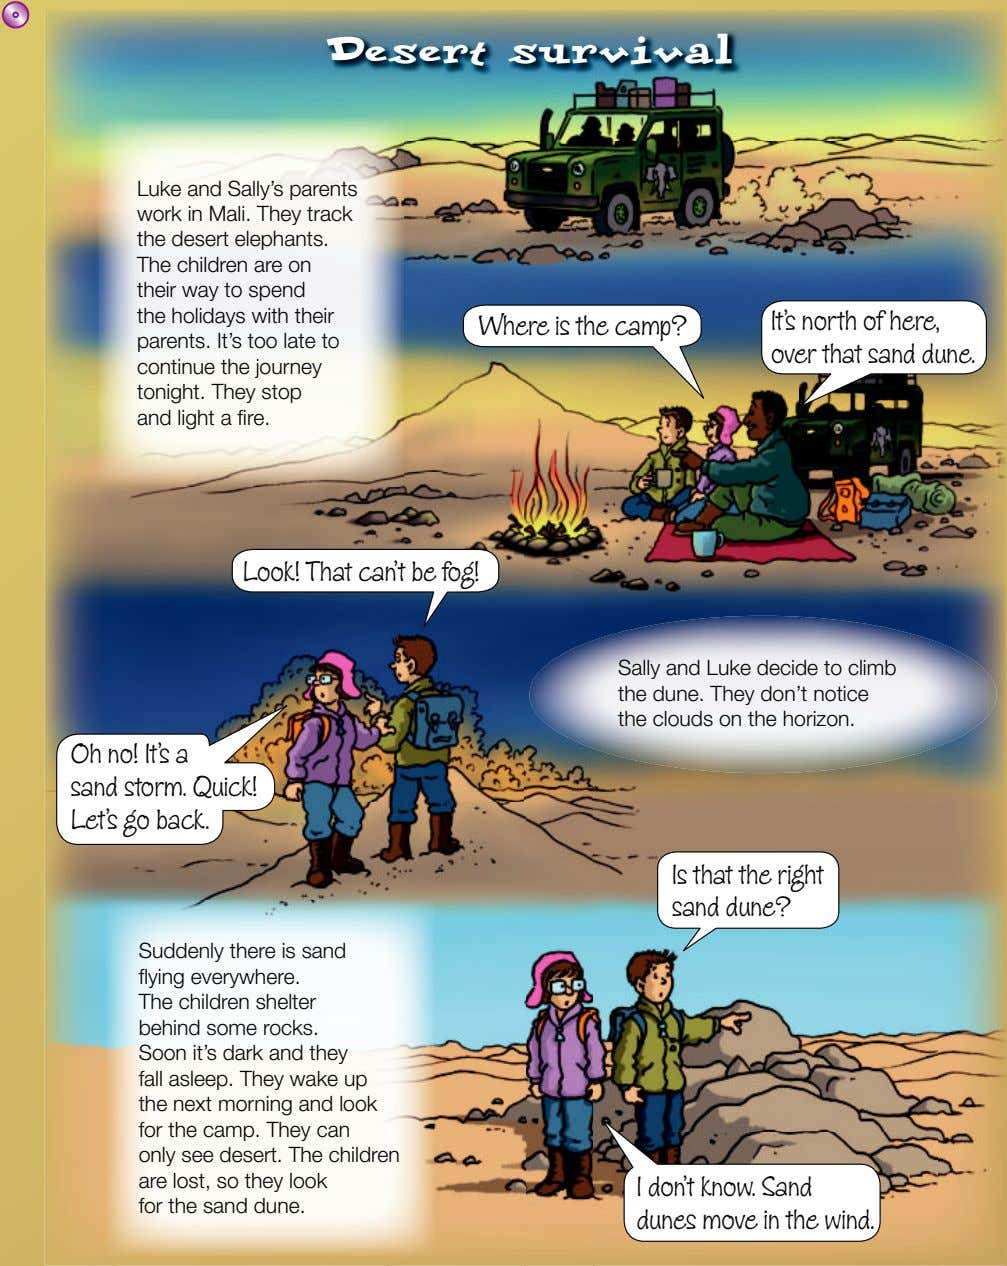 Desert survival Luke and Sally's parents work in Mali. They track the desert elephants. The